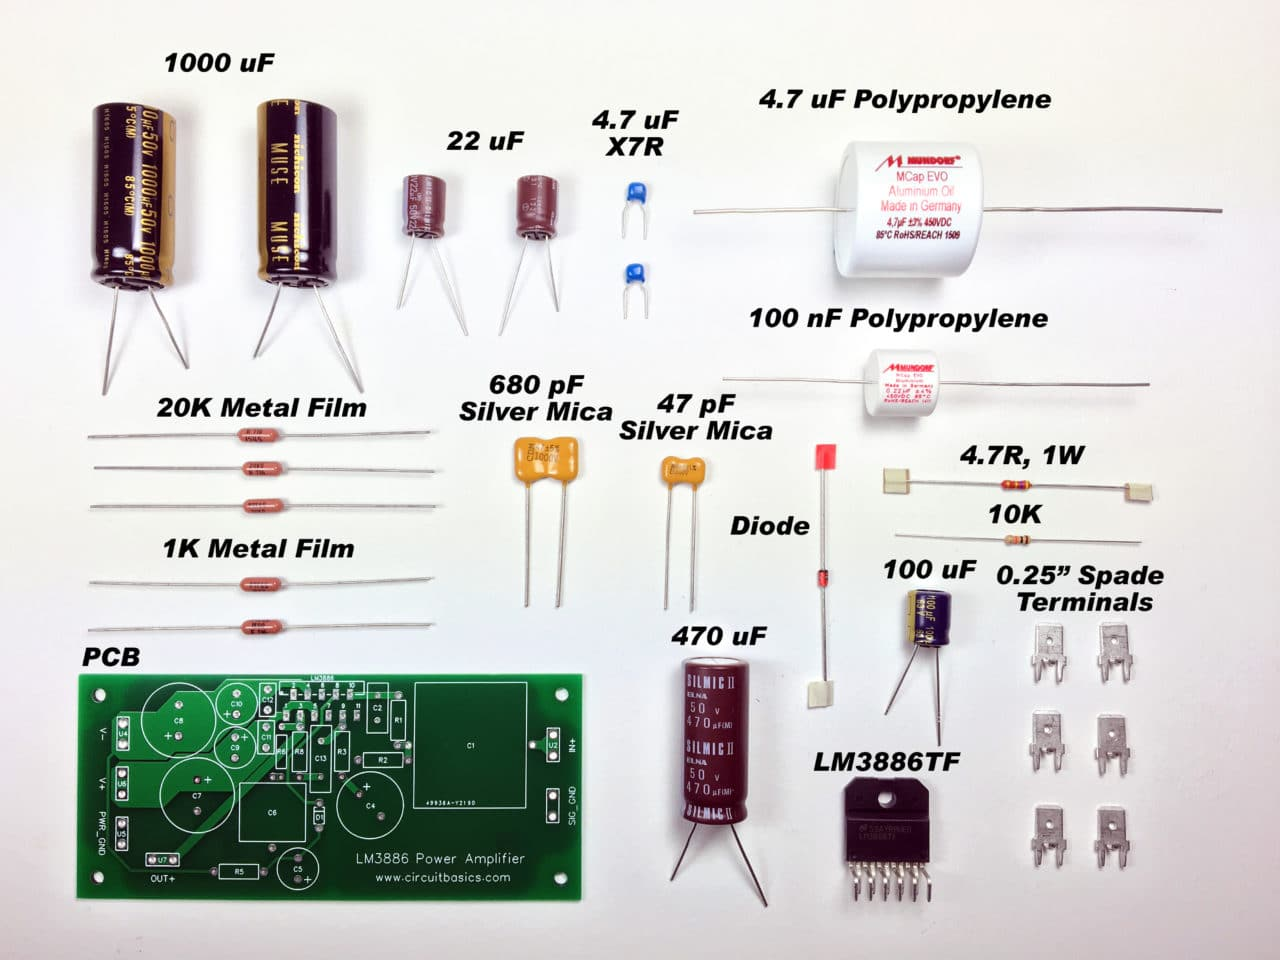 A Complete Guide To Design And Build Hi Fi Lm3886 Amplifier Servo Pin Diagram Free Download Wiring Diagrams Pictures The Total Cost Came About 118 For Both Channels Not Including Chassis Power Supply Parts You Can It Lot Less With Cheaper